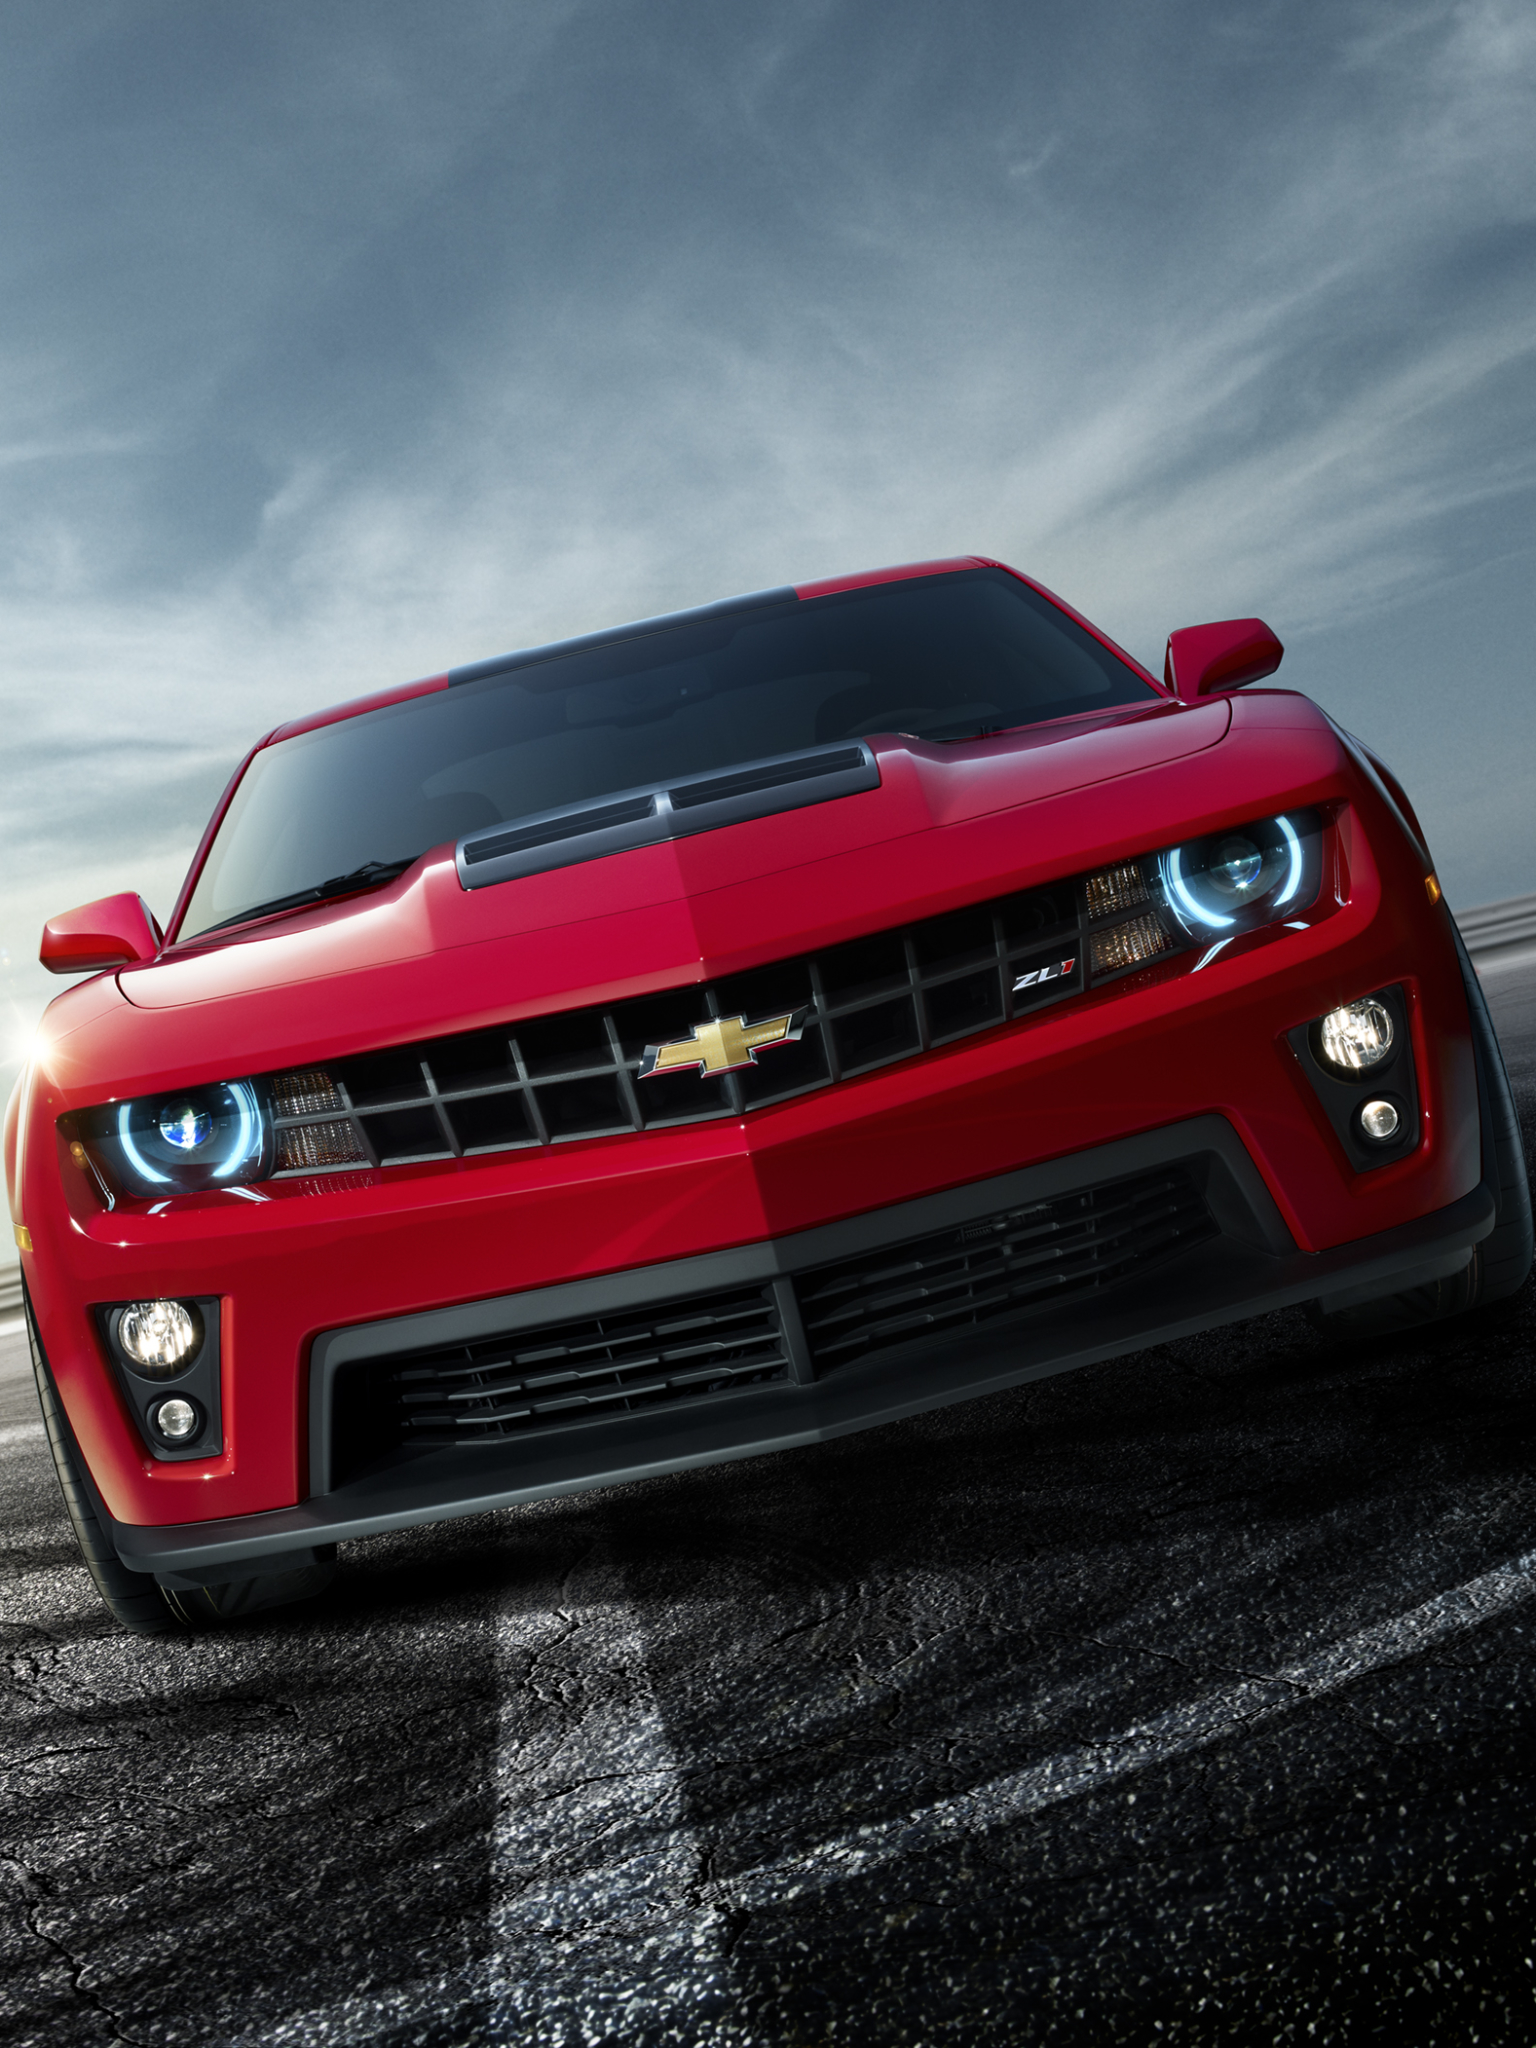 Vehicles Chevrolet Camaro Zl1 1536x2048 Wallpaper Id 753559 Mobile Abyss